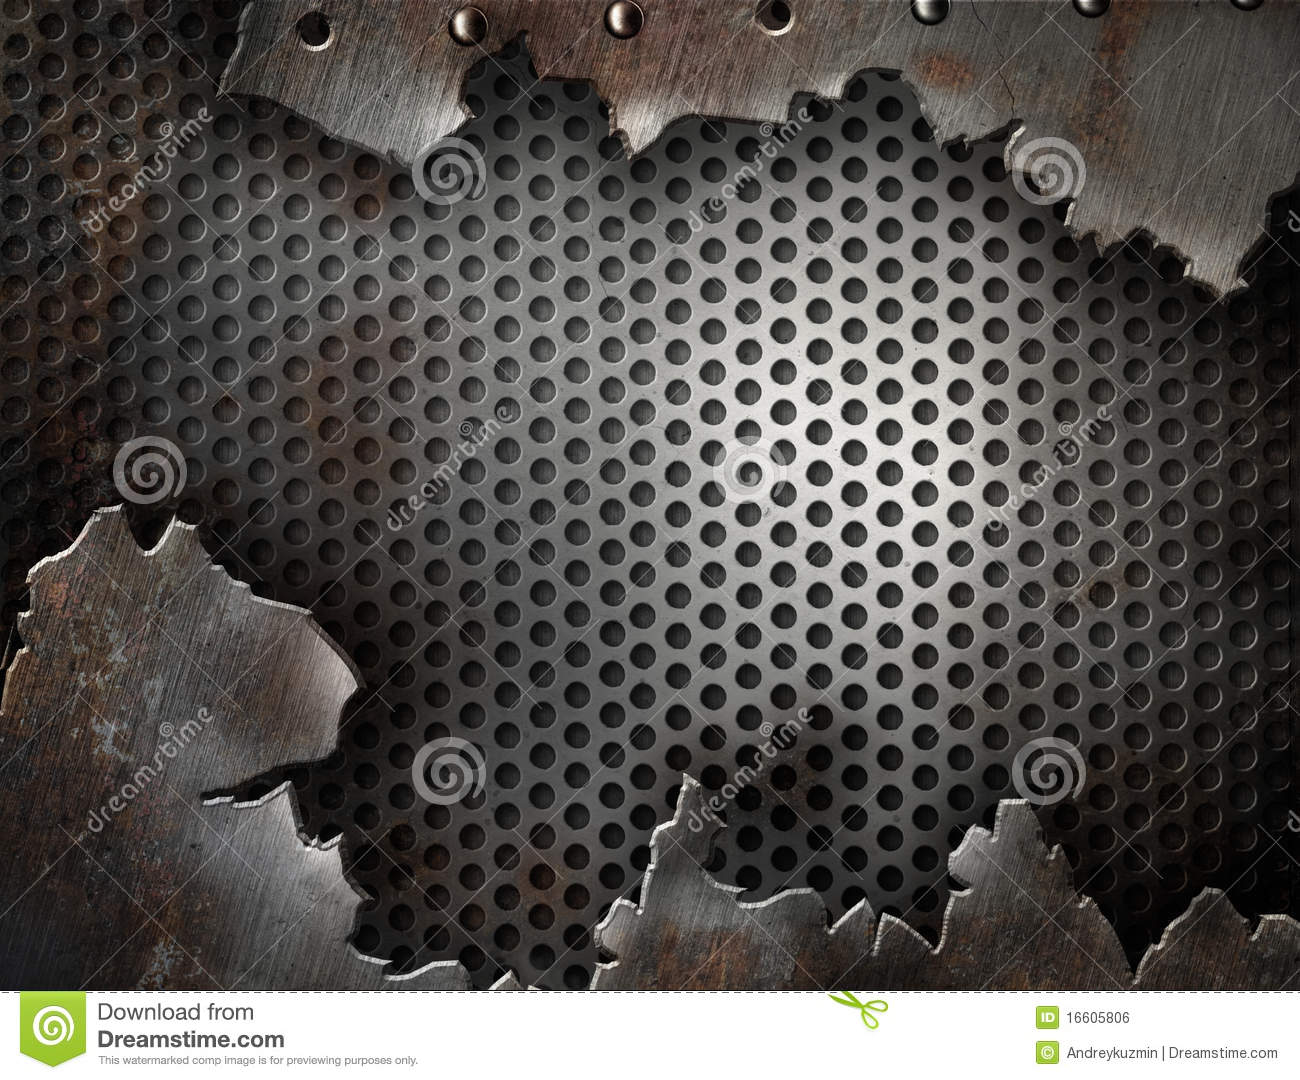 Grunge metal cracked with rivets template